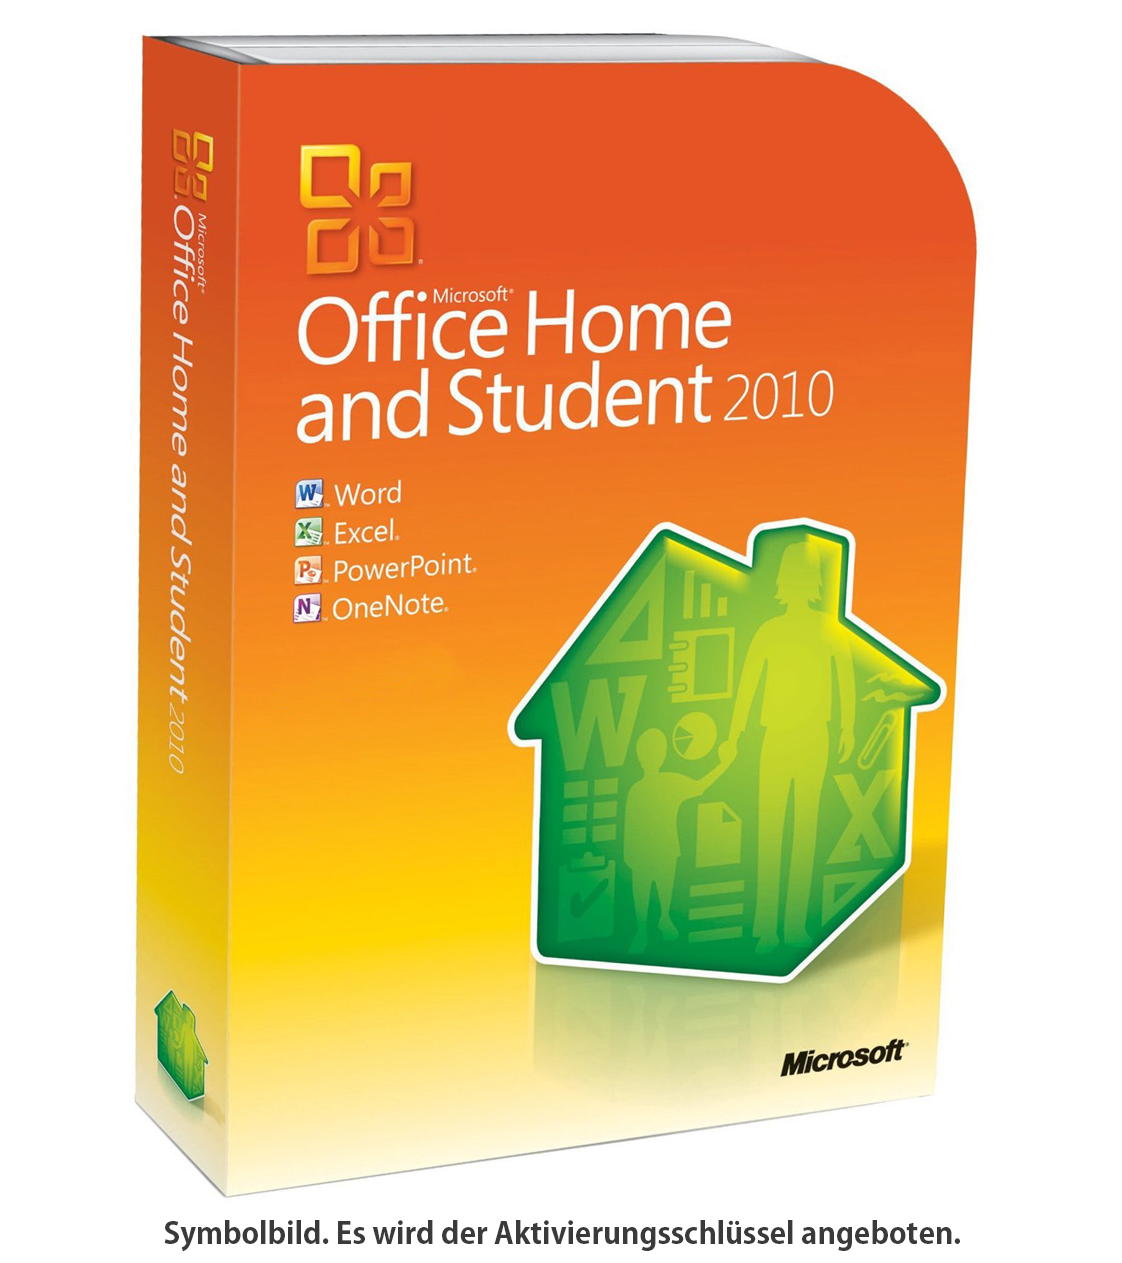 microsoft office home and student 2010. Black Bedroom Furniture Sets. Home Design Ideas